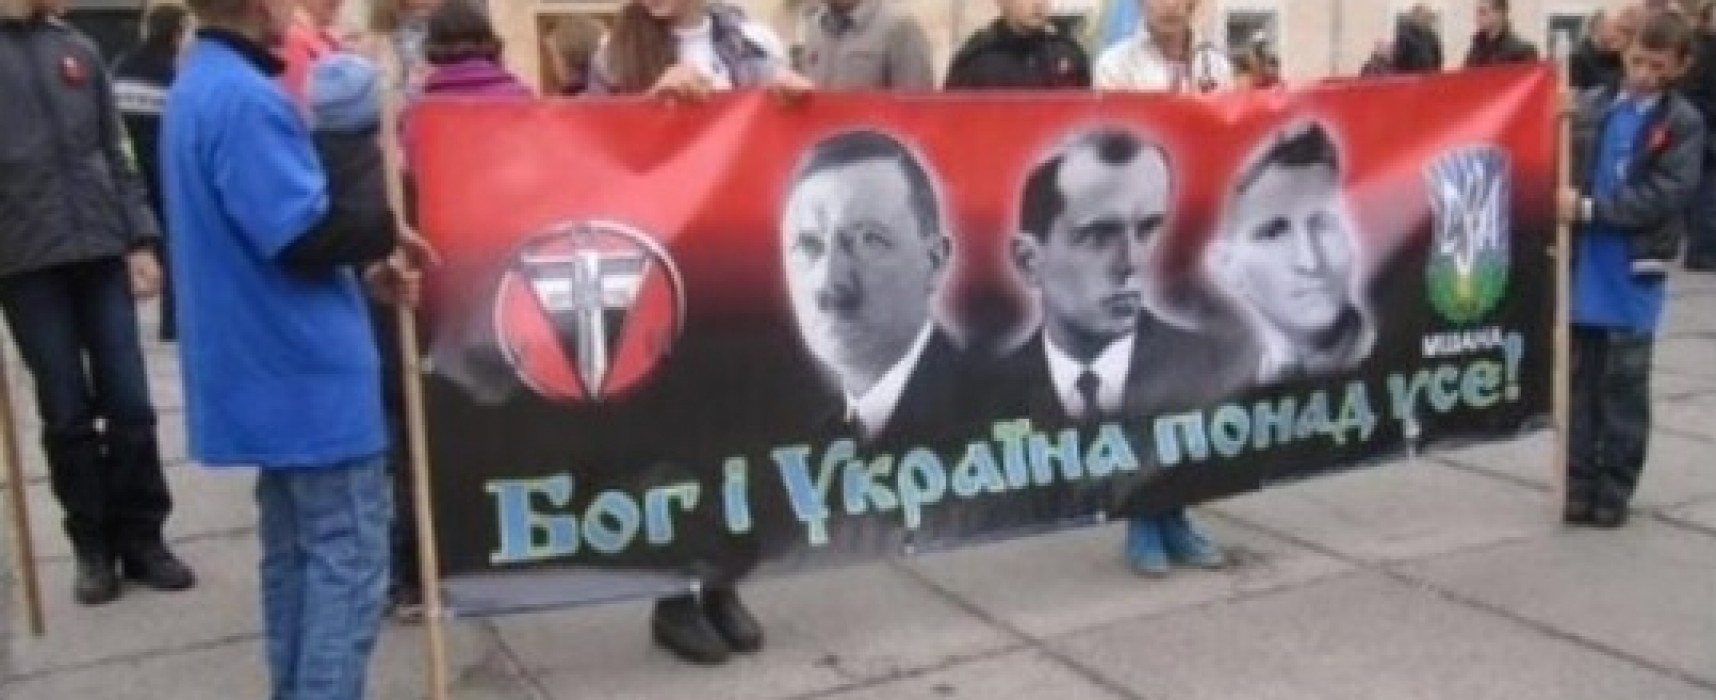 Fake Photo: Portrait of Hitler on Poster of Ukrainian Nationalists